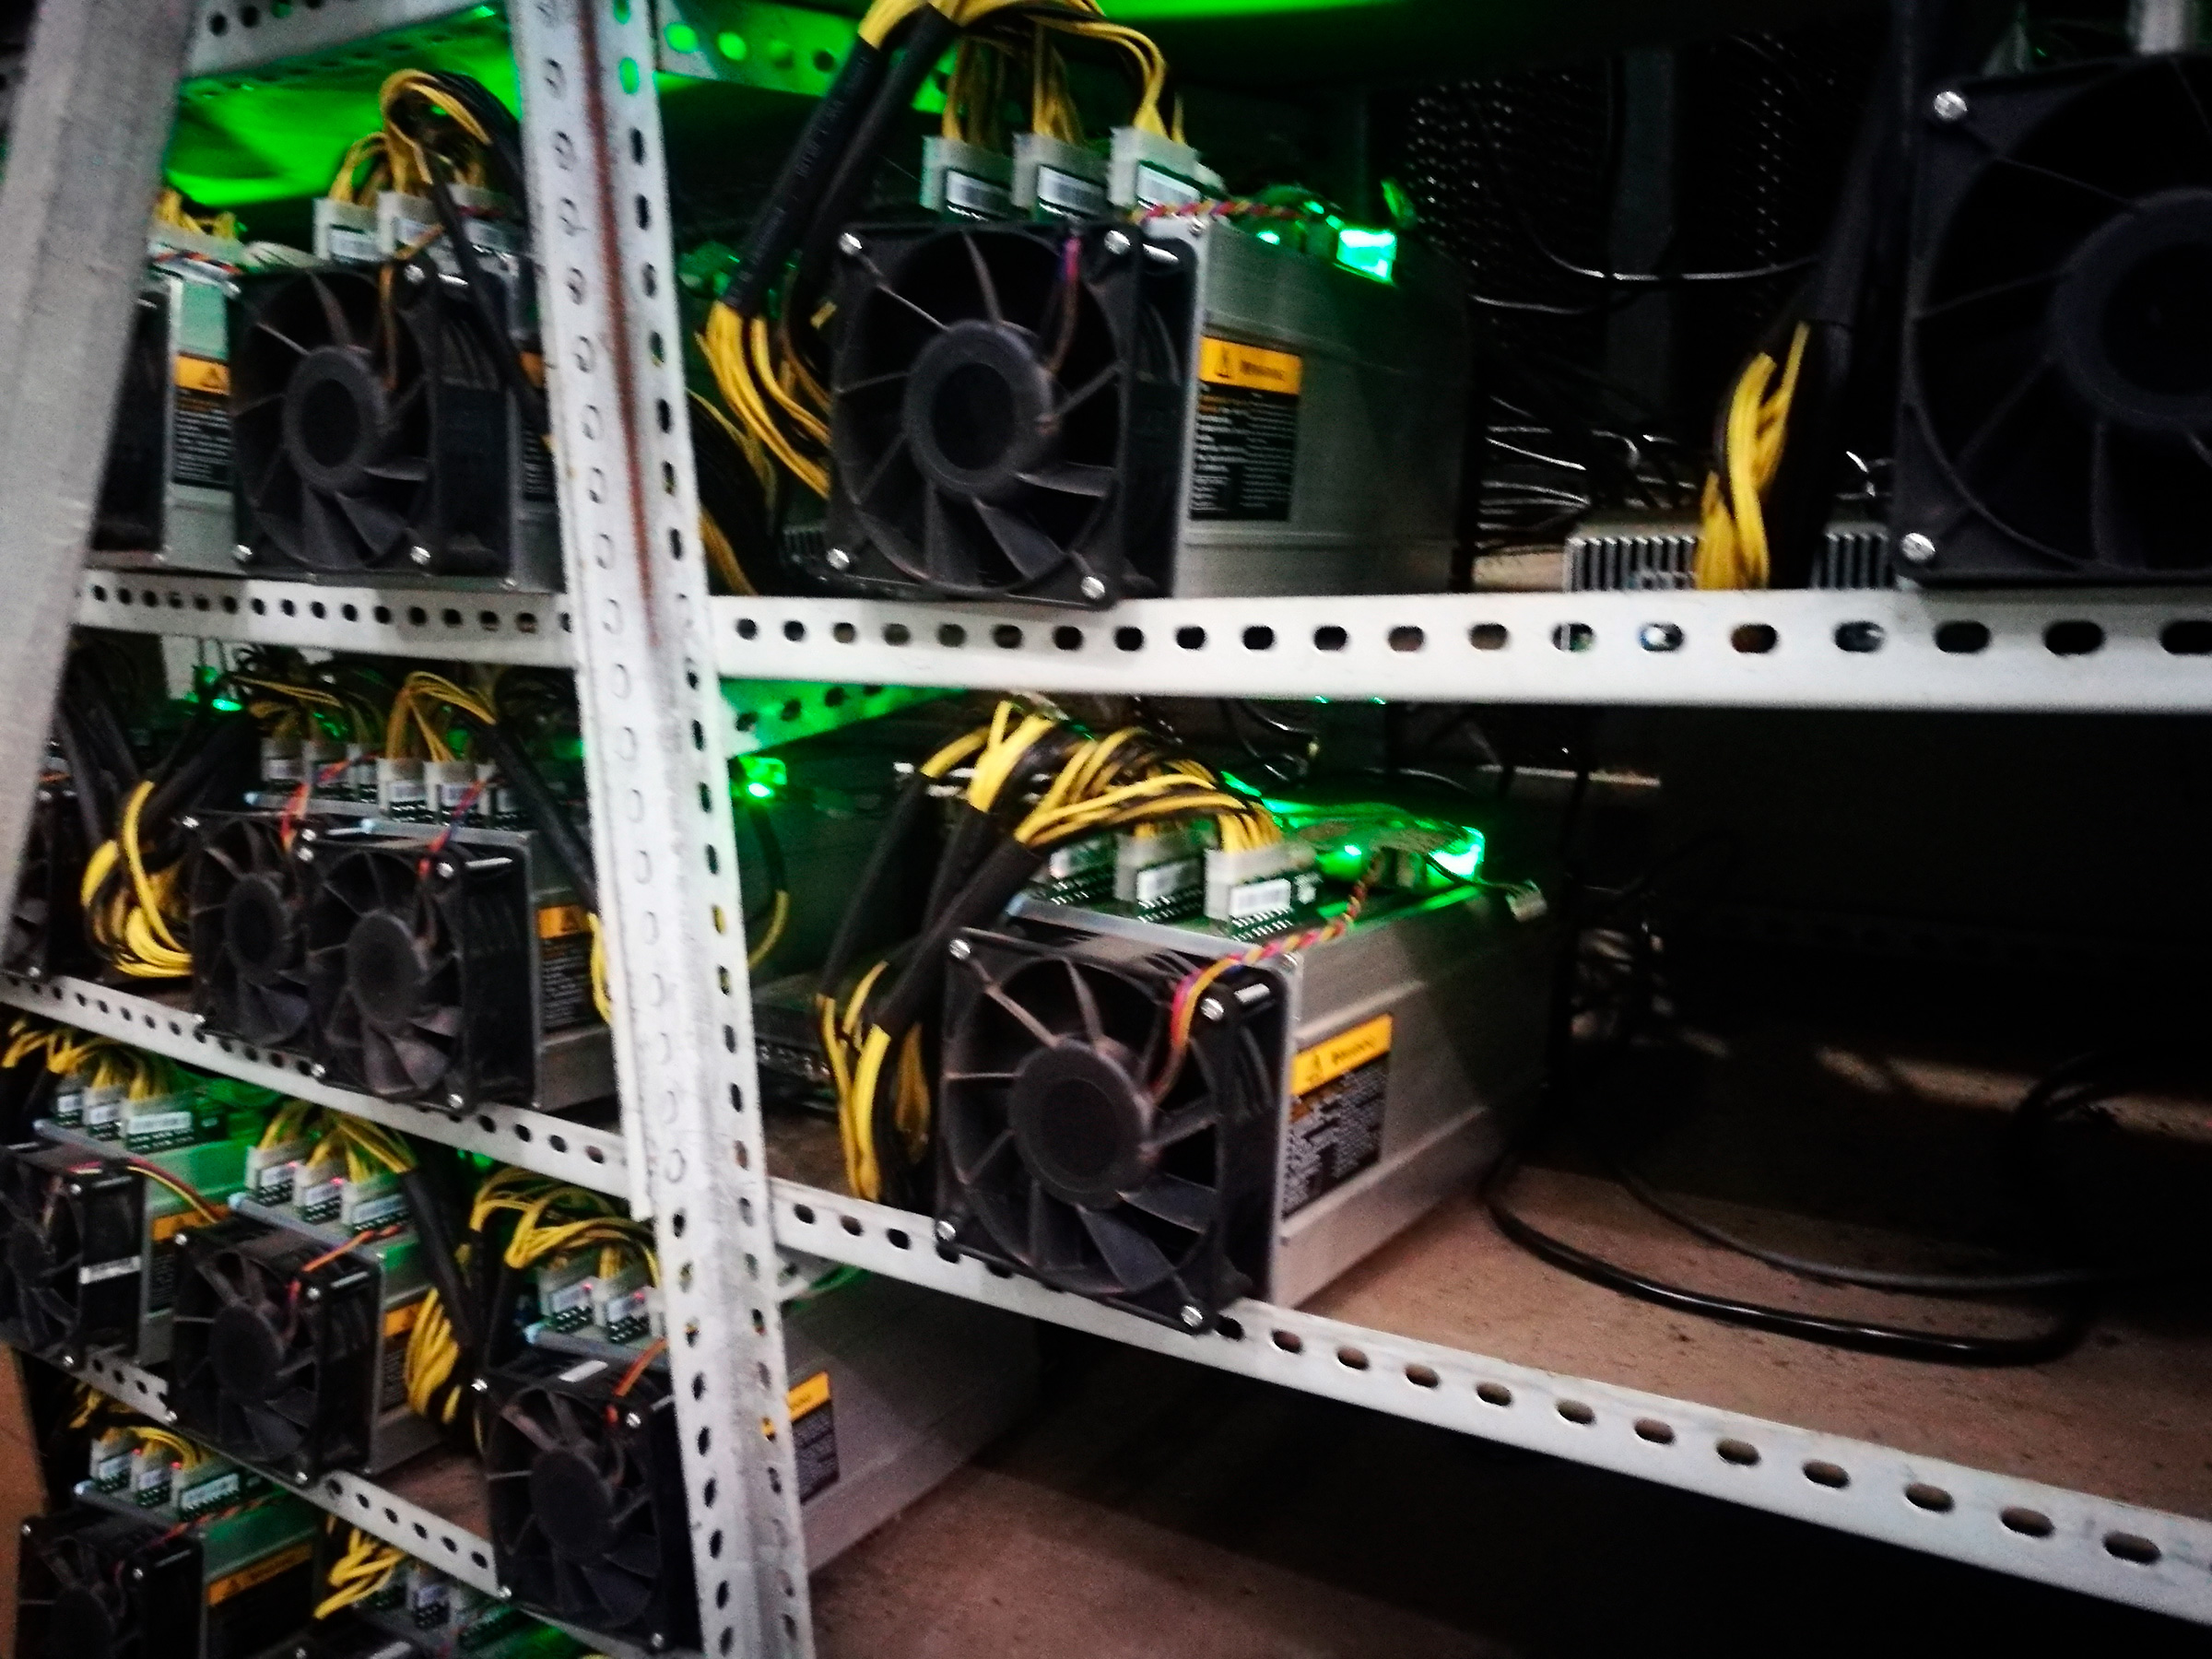 Bictoin mining machines are running at a bitcoin farm in Mabian Yi Autonomous County, southwest China's Sichuan province, 6 April 2017.